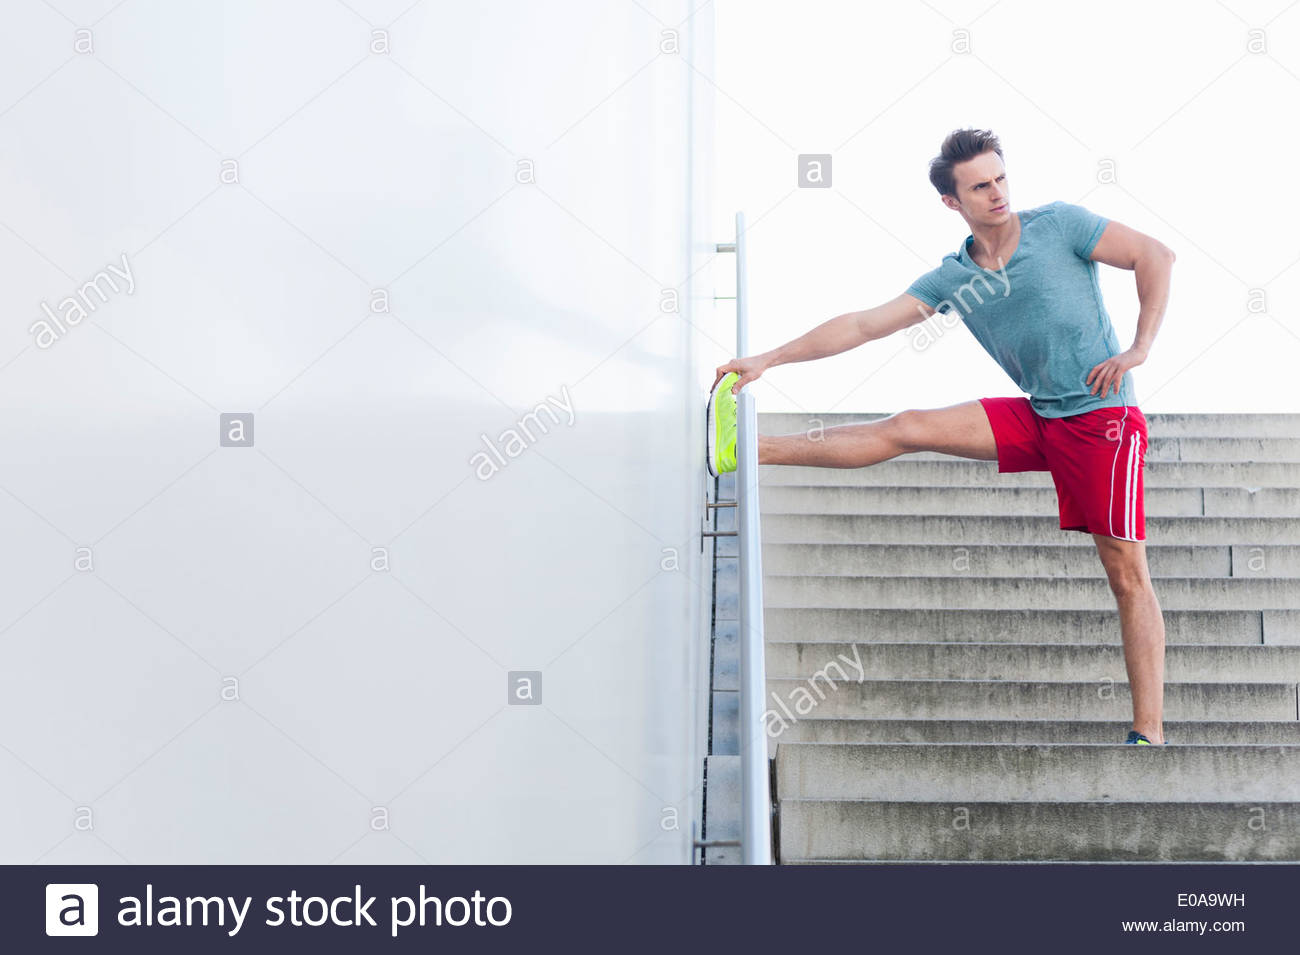 Mid adult male runner touching toe on handrail - Stock Image